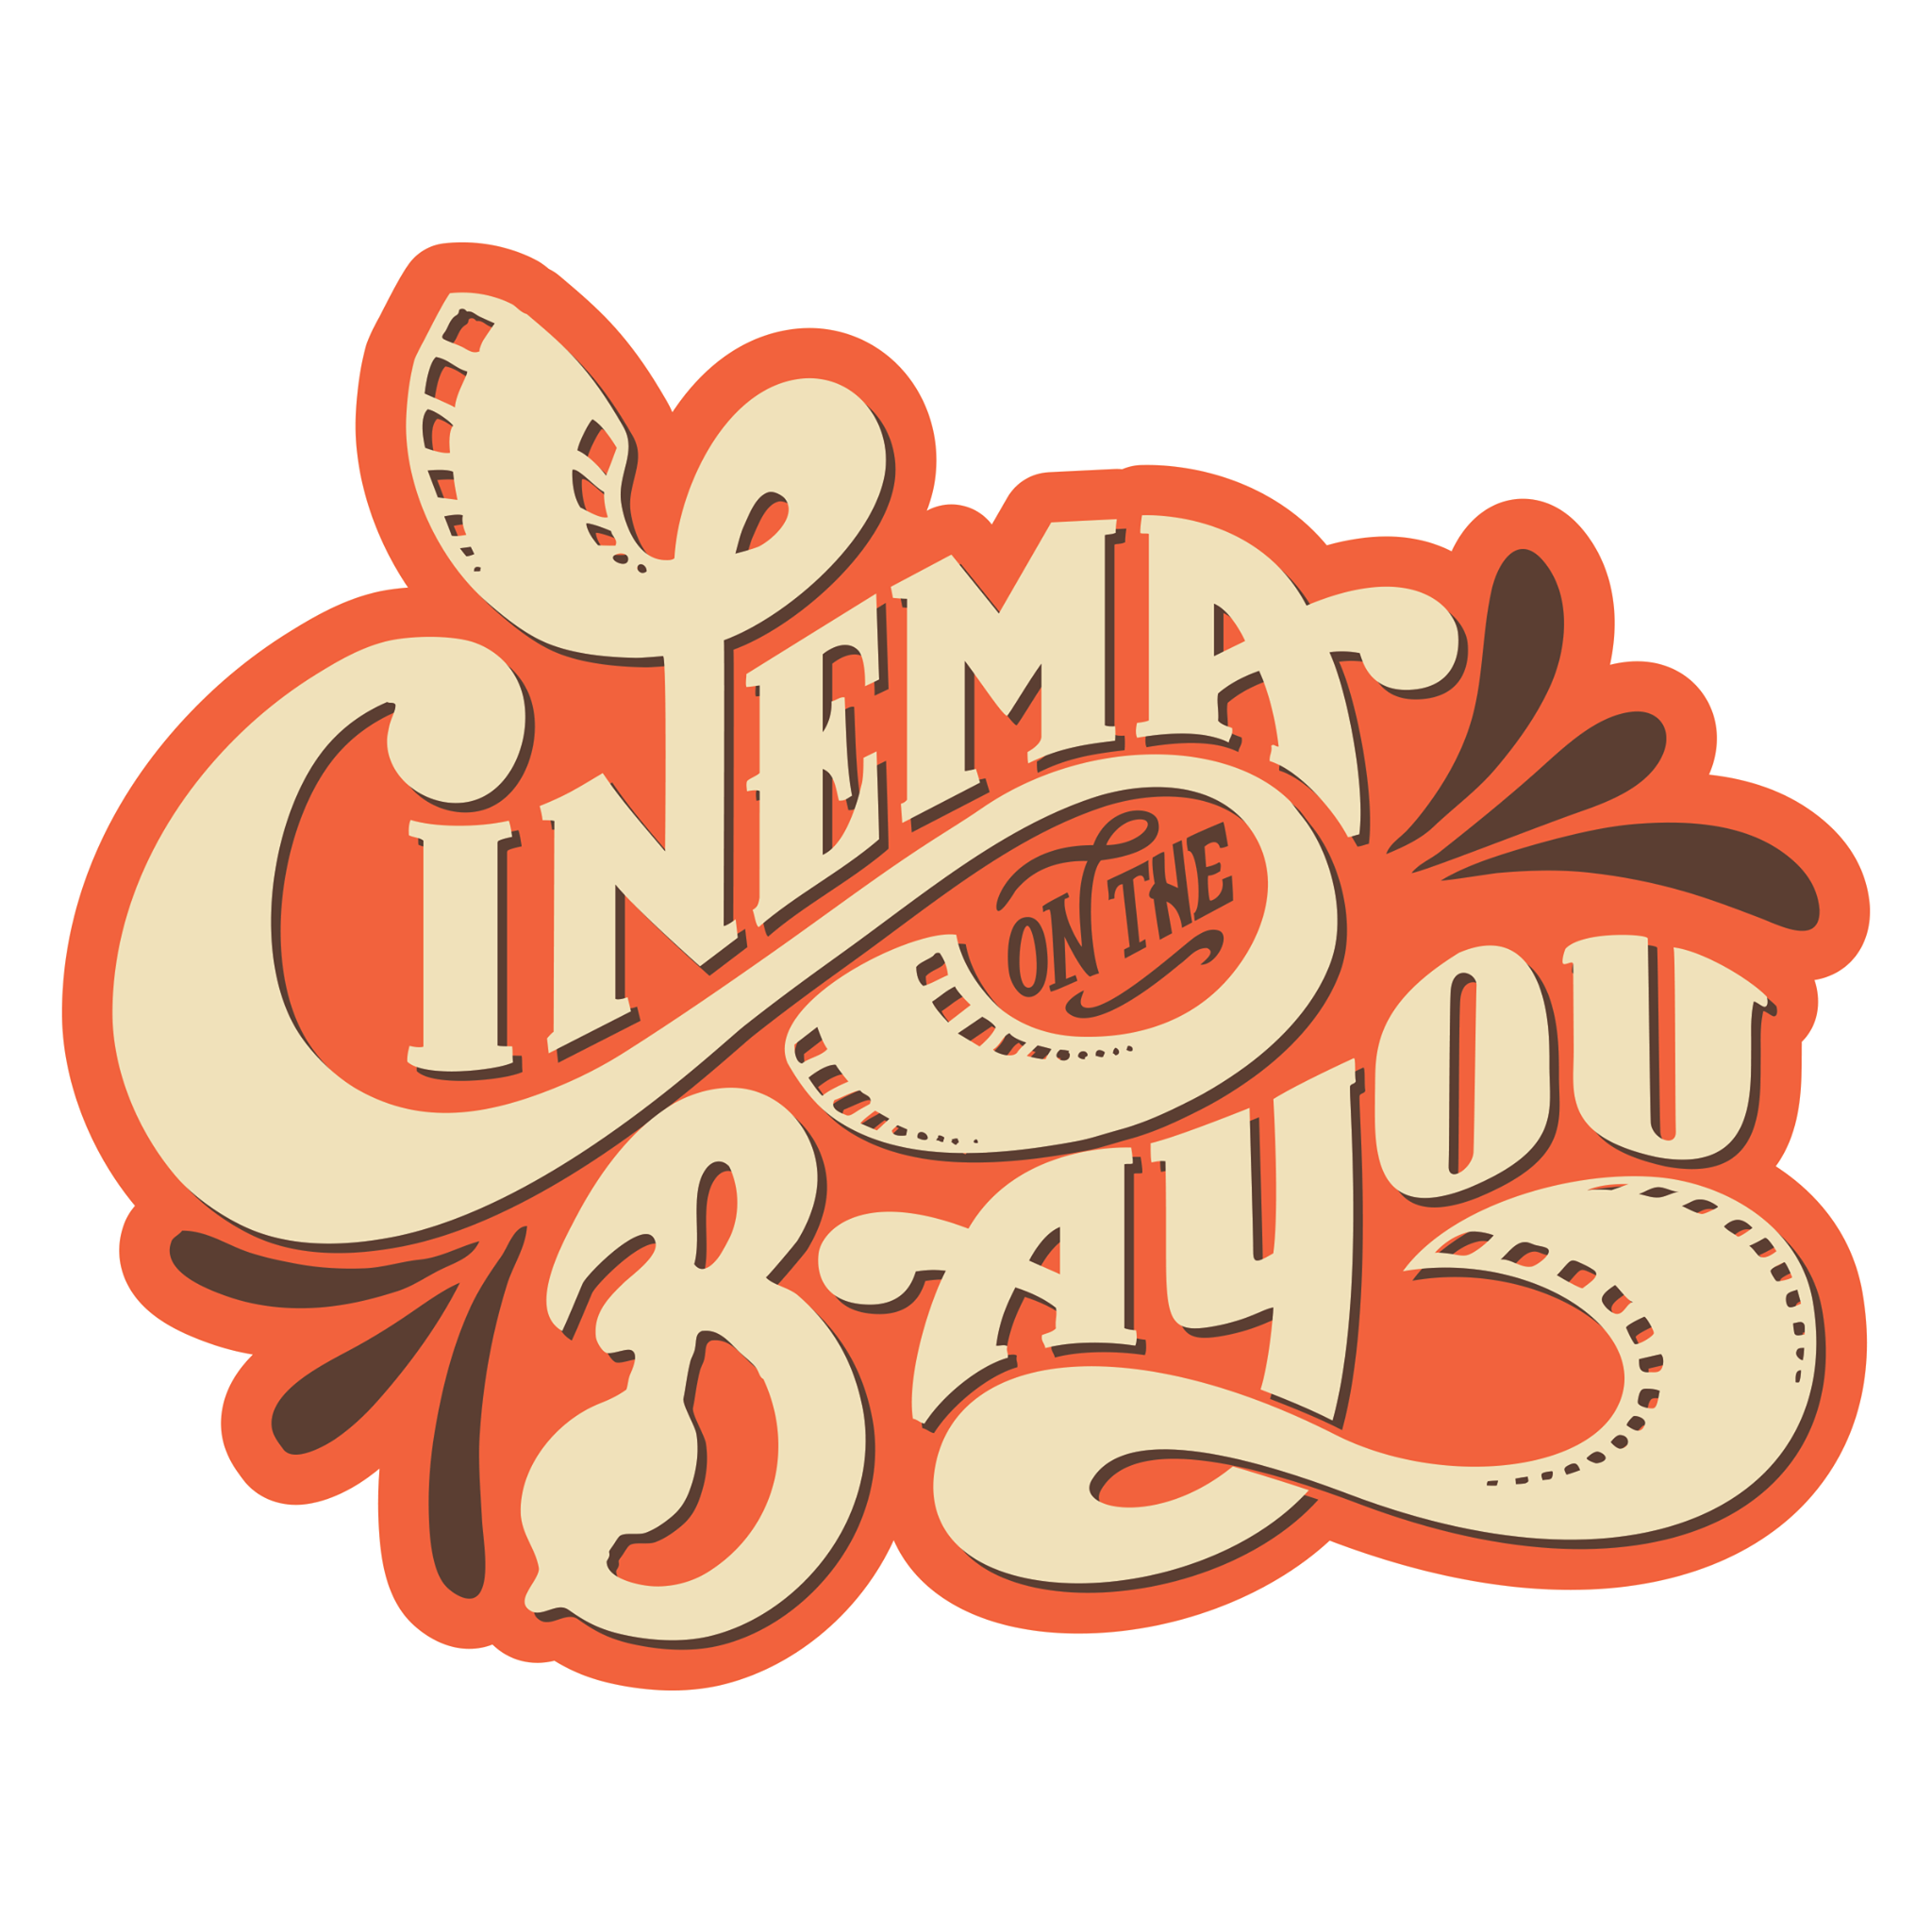 Official selection for Cinema on the Bayou Film Festival